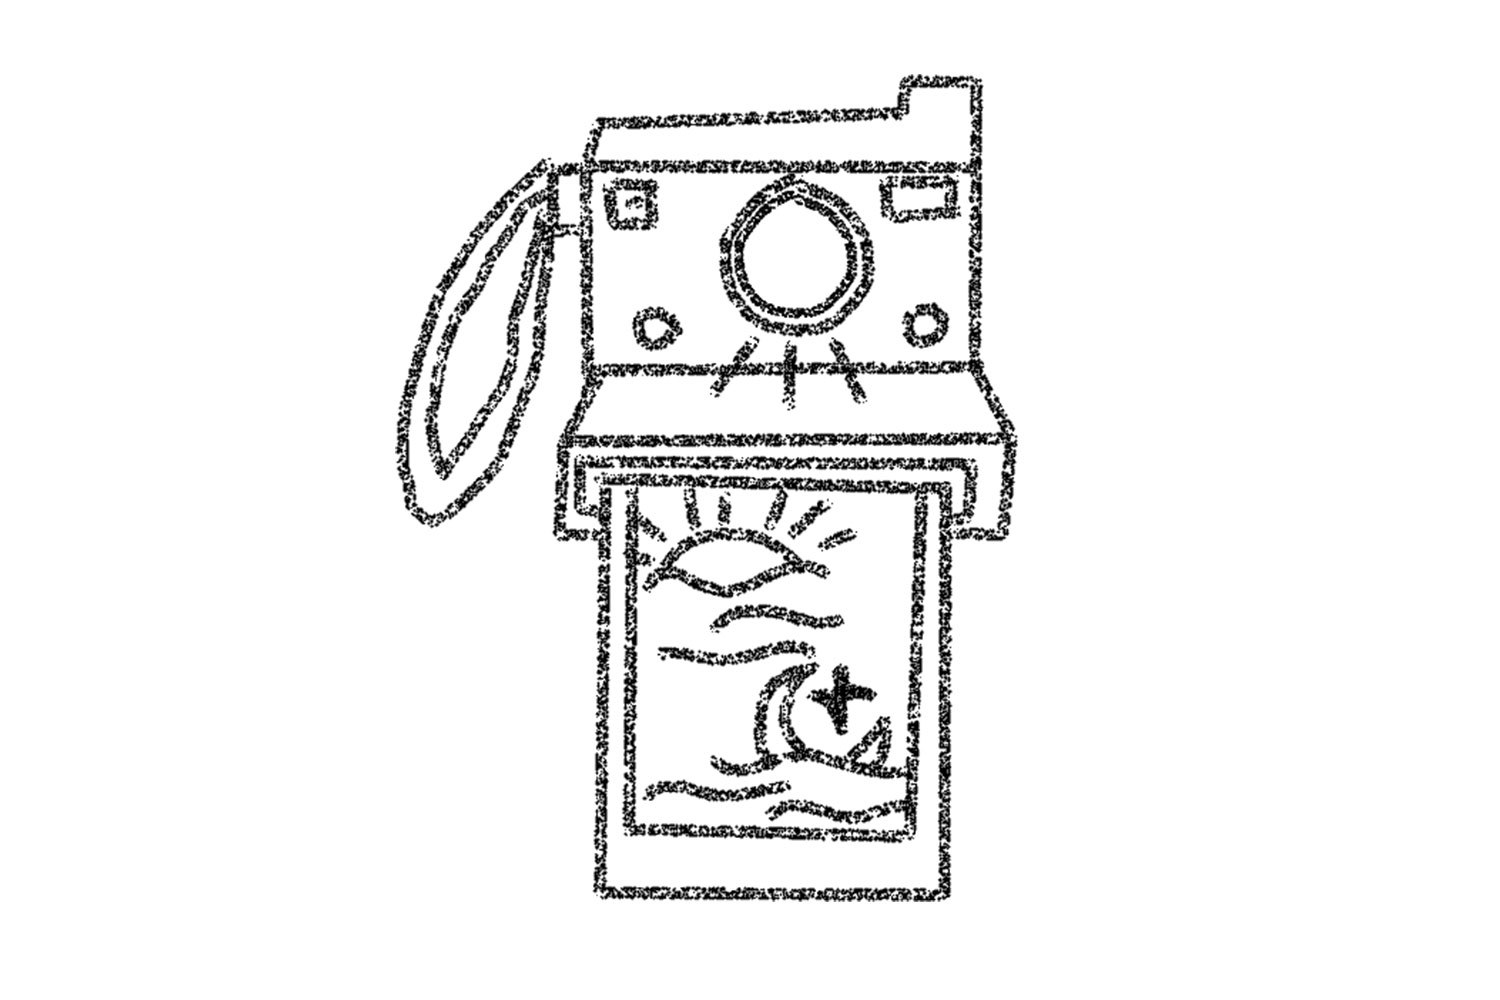 Digital illustration of a polaroid camera with film coming out of the front. The image on the polaroid is of the sun, the moon, and a star. Illustration by Kyra Horton.